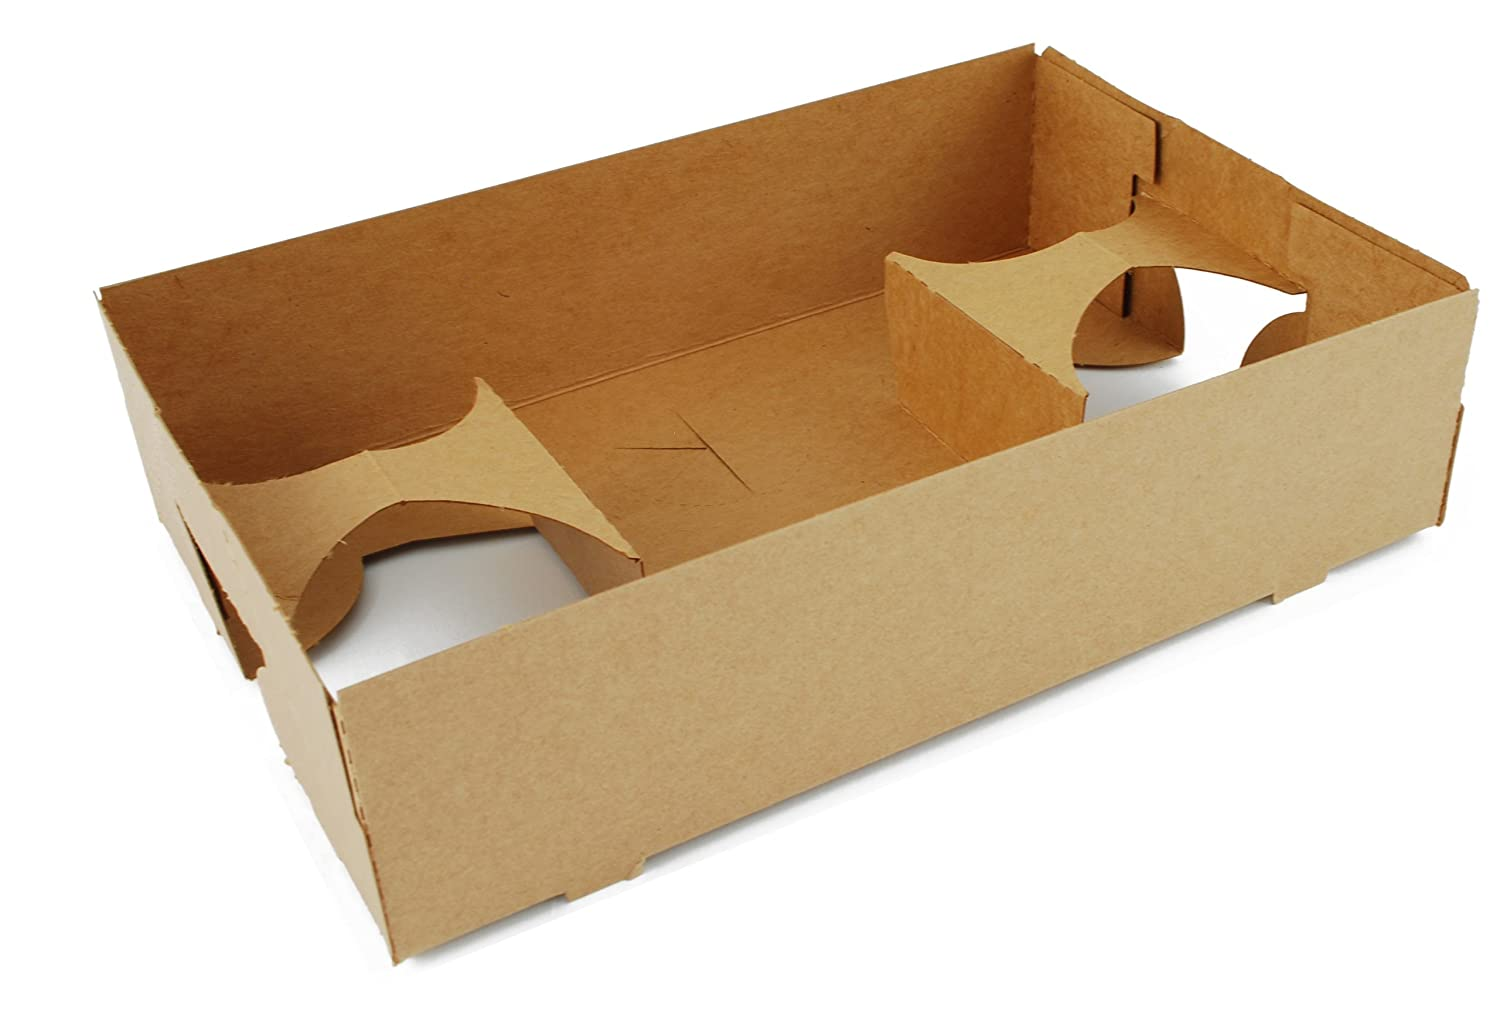 Southern Champion Tray 0120 Kraft Paperboard 4 Corner Pop Up Food and Drink Tray, 10